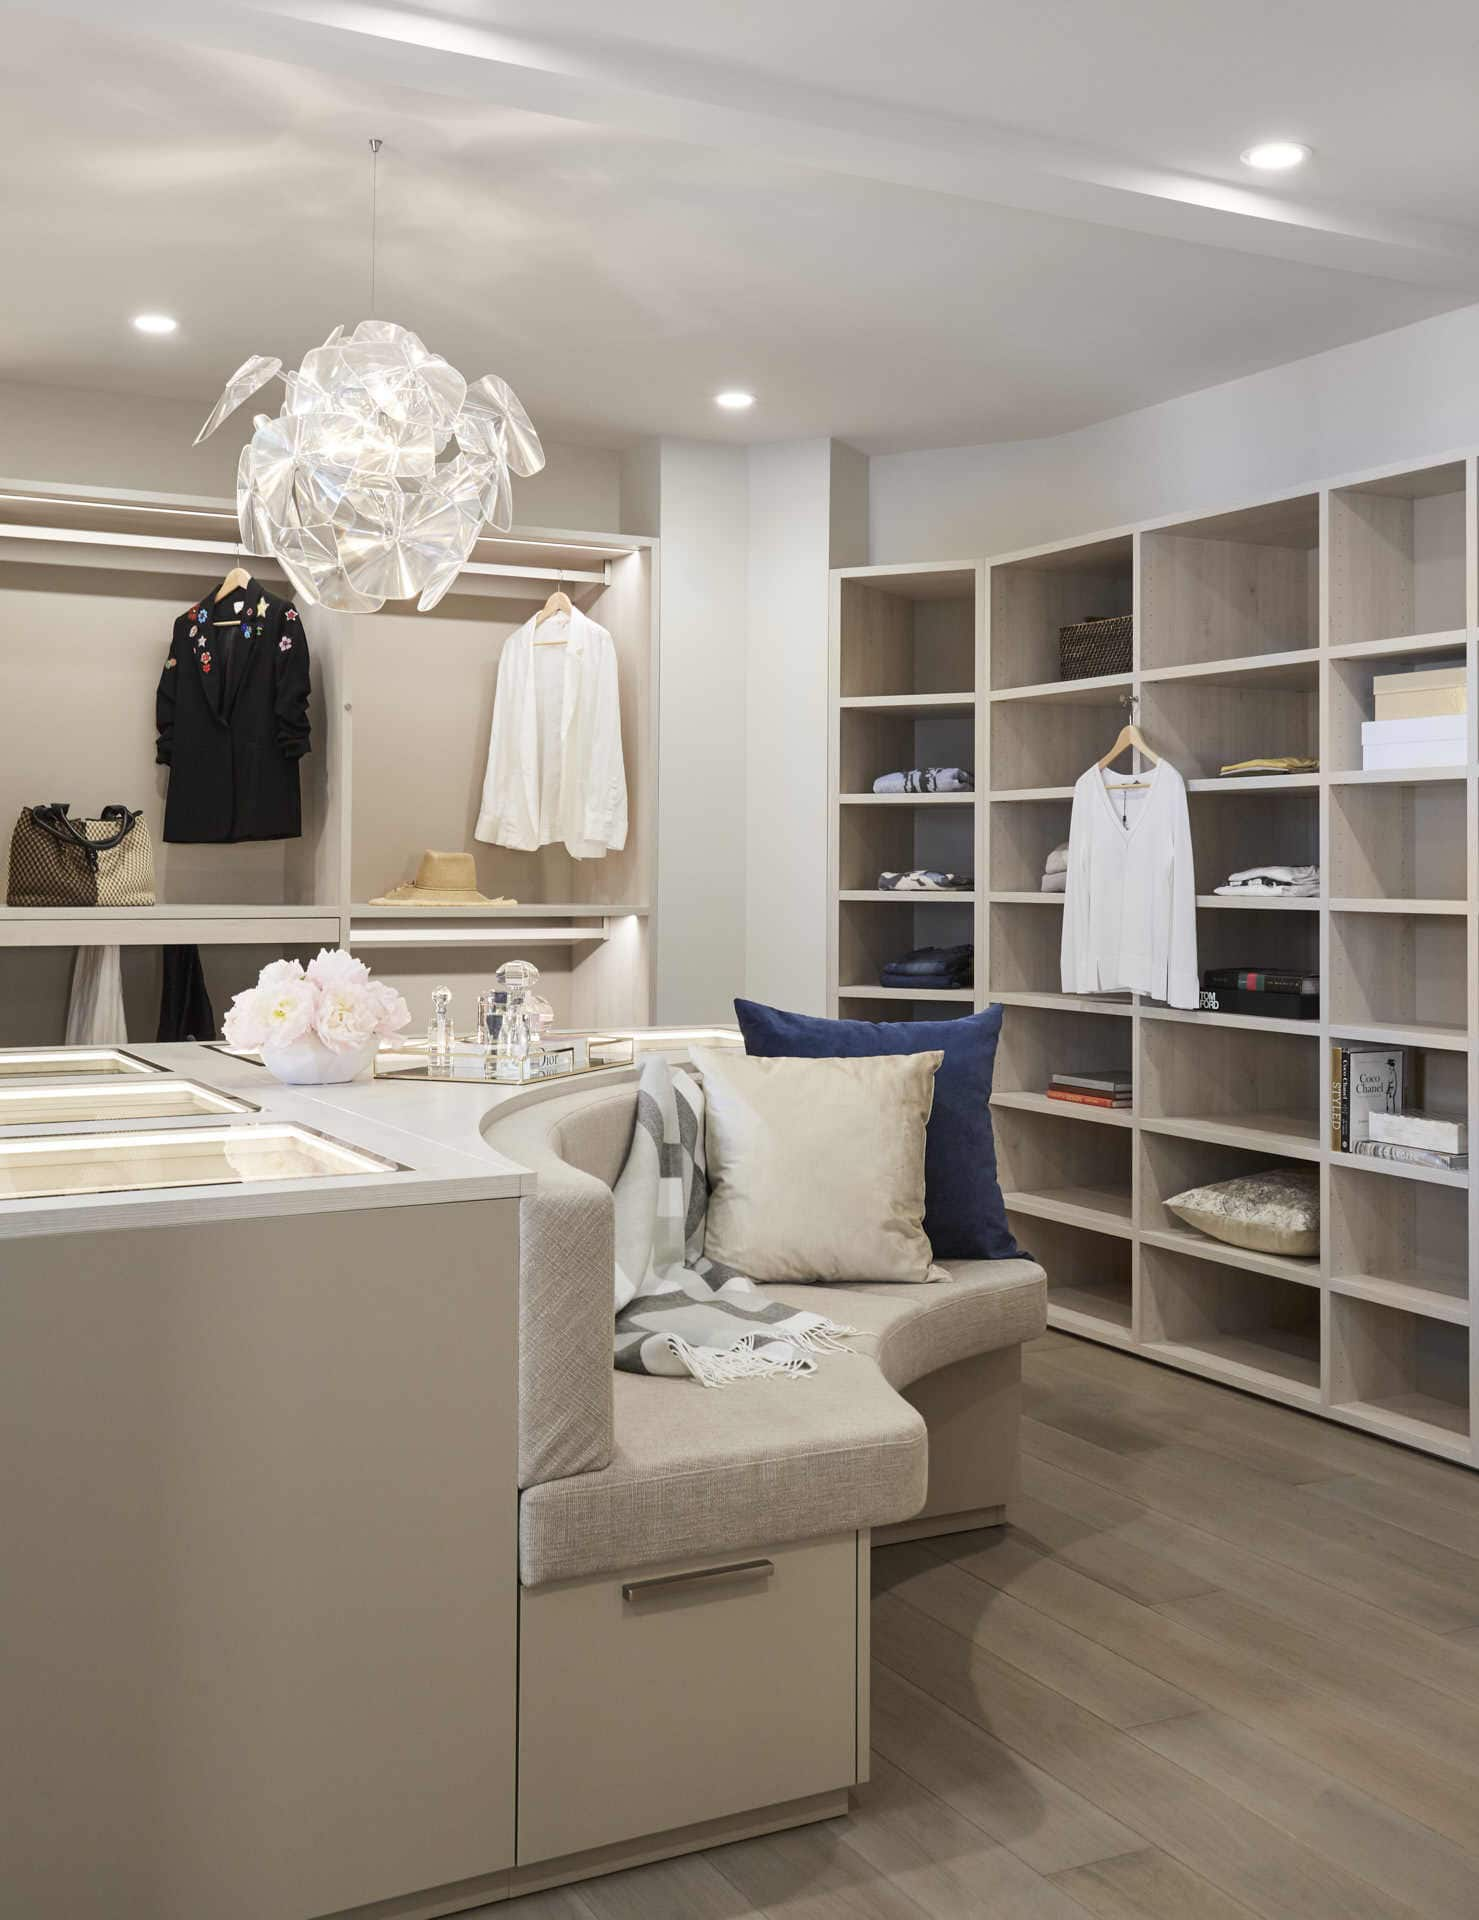 upholstered banquette seating in a schmalenbach closet